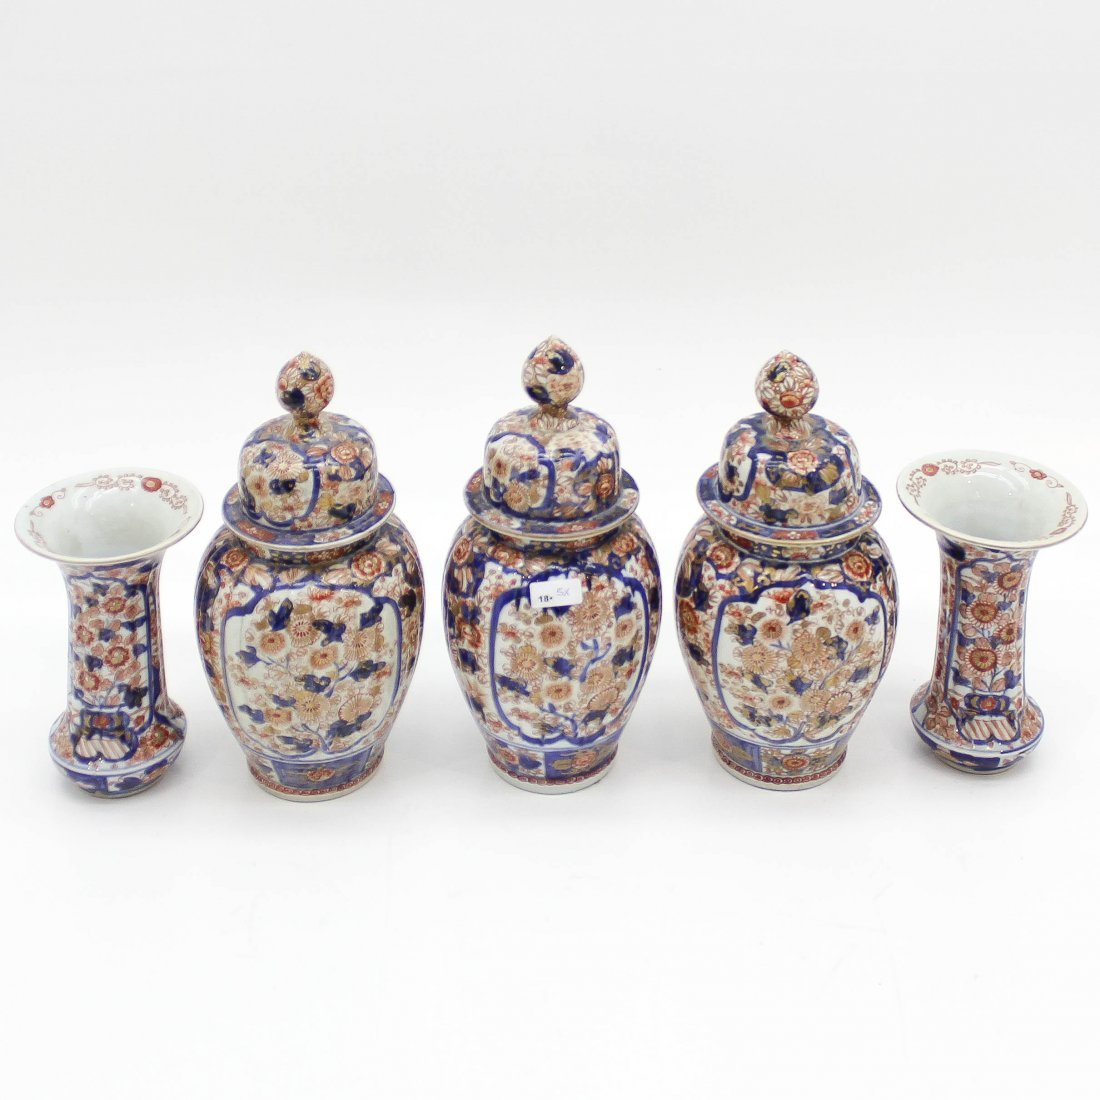 18th Century Japanese 5 Piece Garniture of Vases